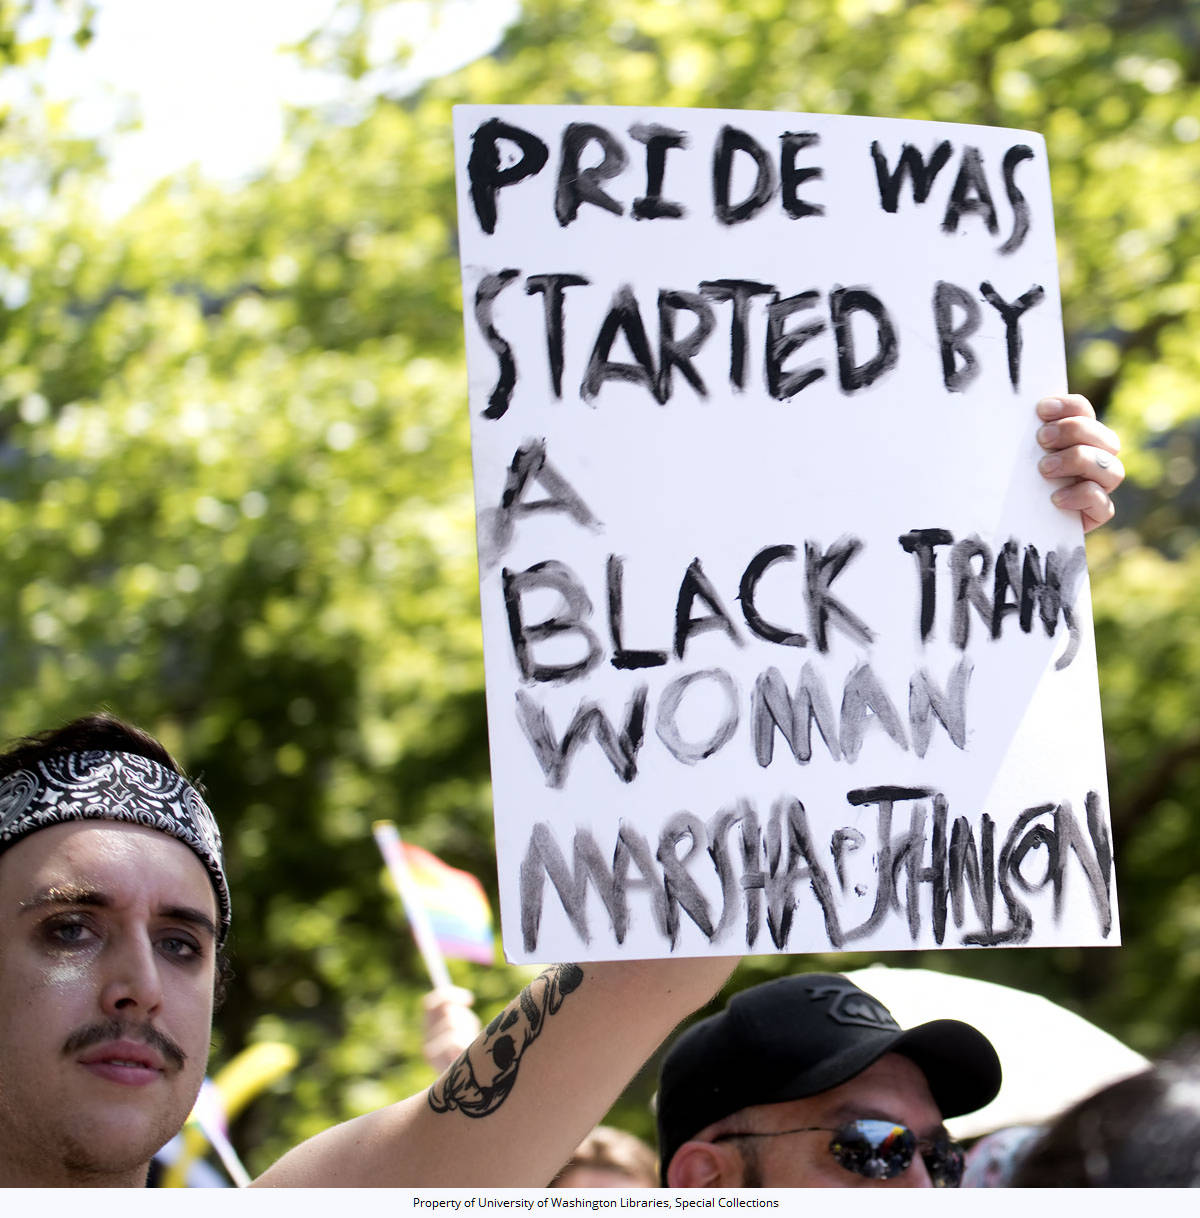 """43rd Annual Pride Parade: Marcher holding a sign reading """"Pride was started by a black trans woman - Marsha Johnson"""", Denny Way at 2nd Ave N., Seattle, Washington, June 25, 2017"""